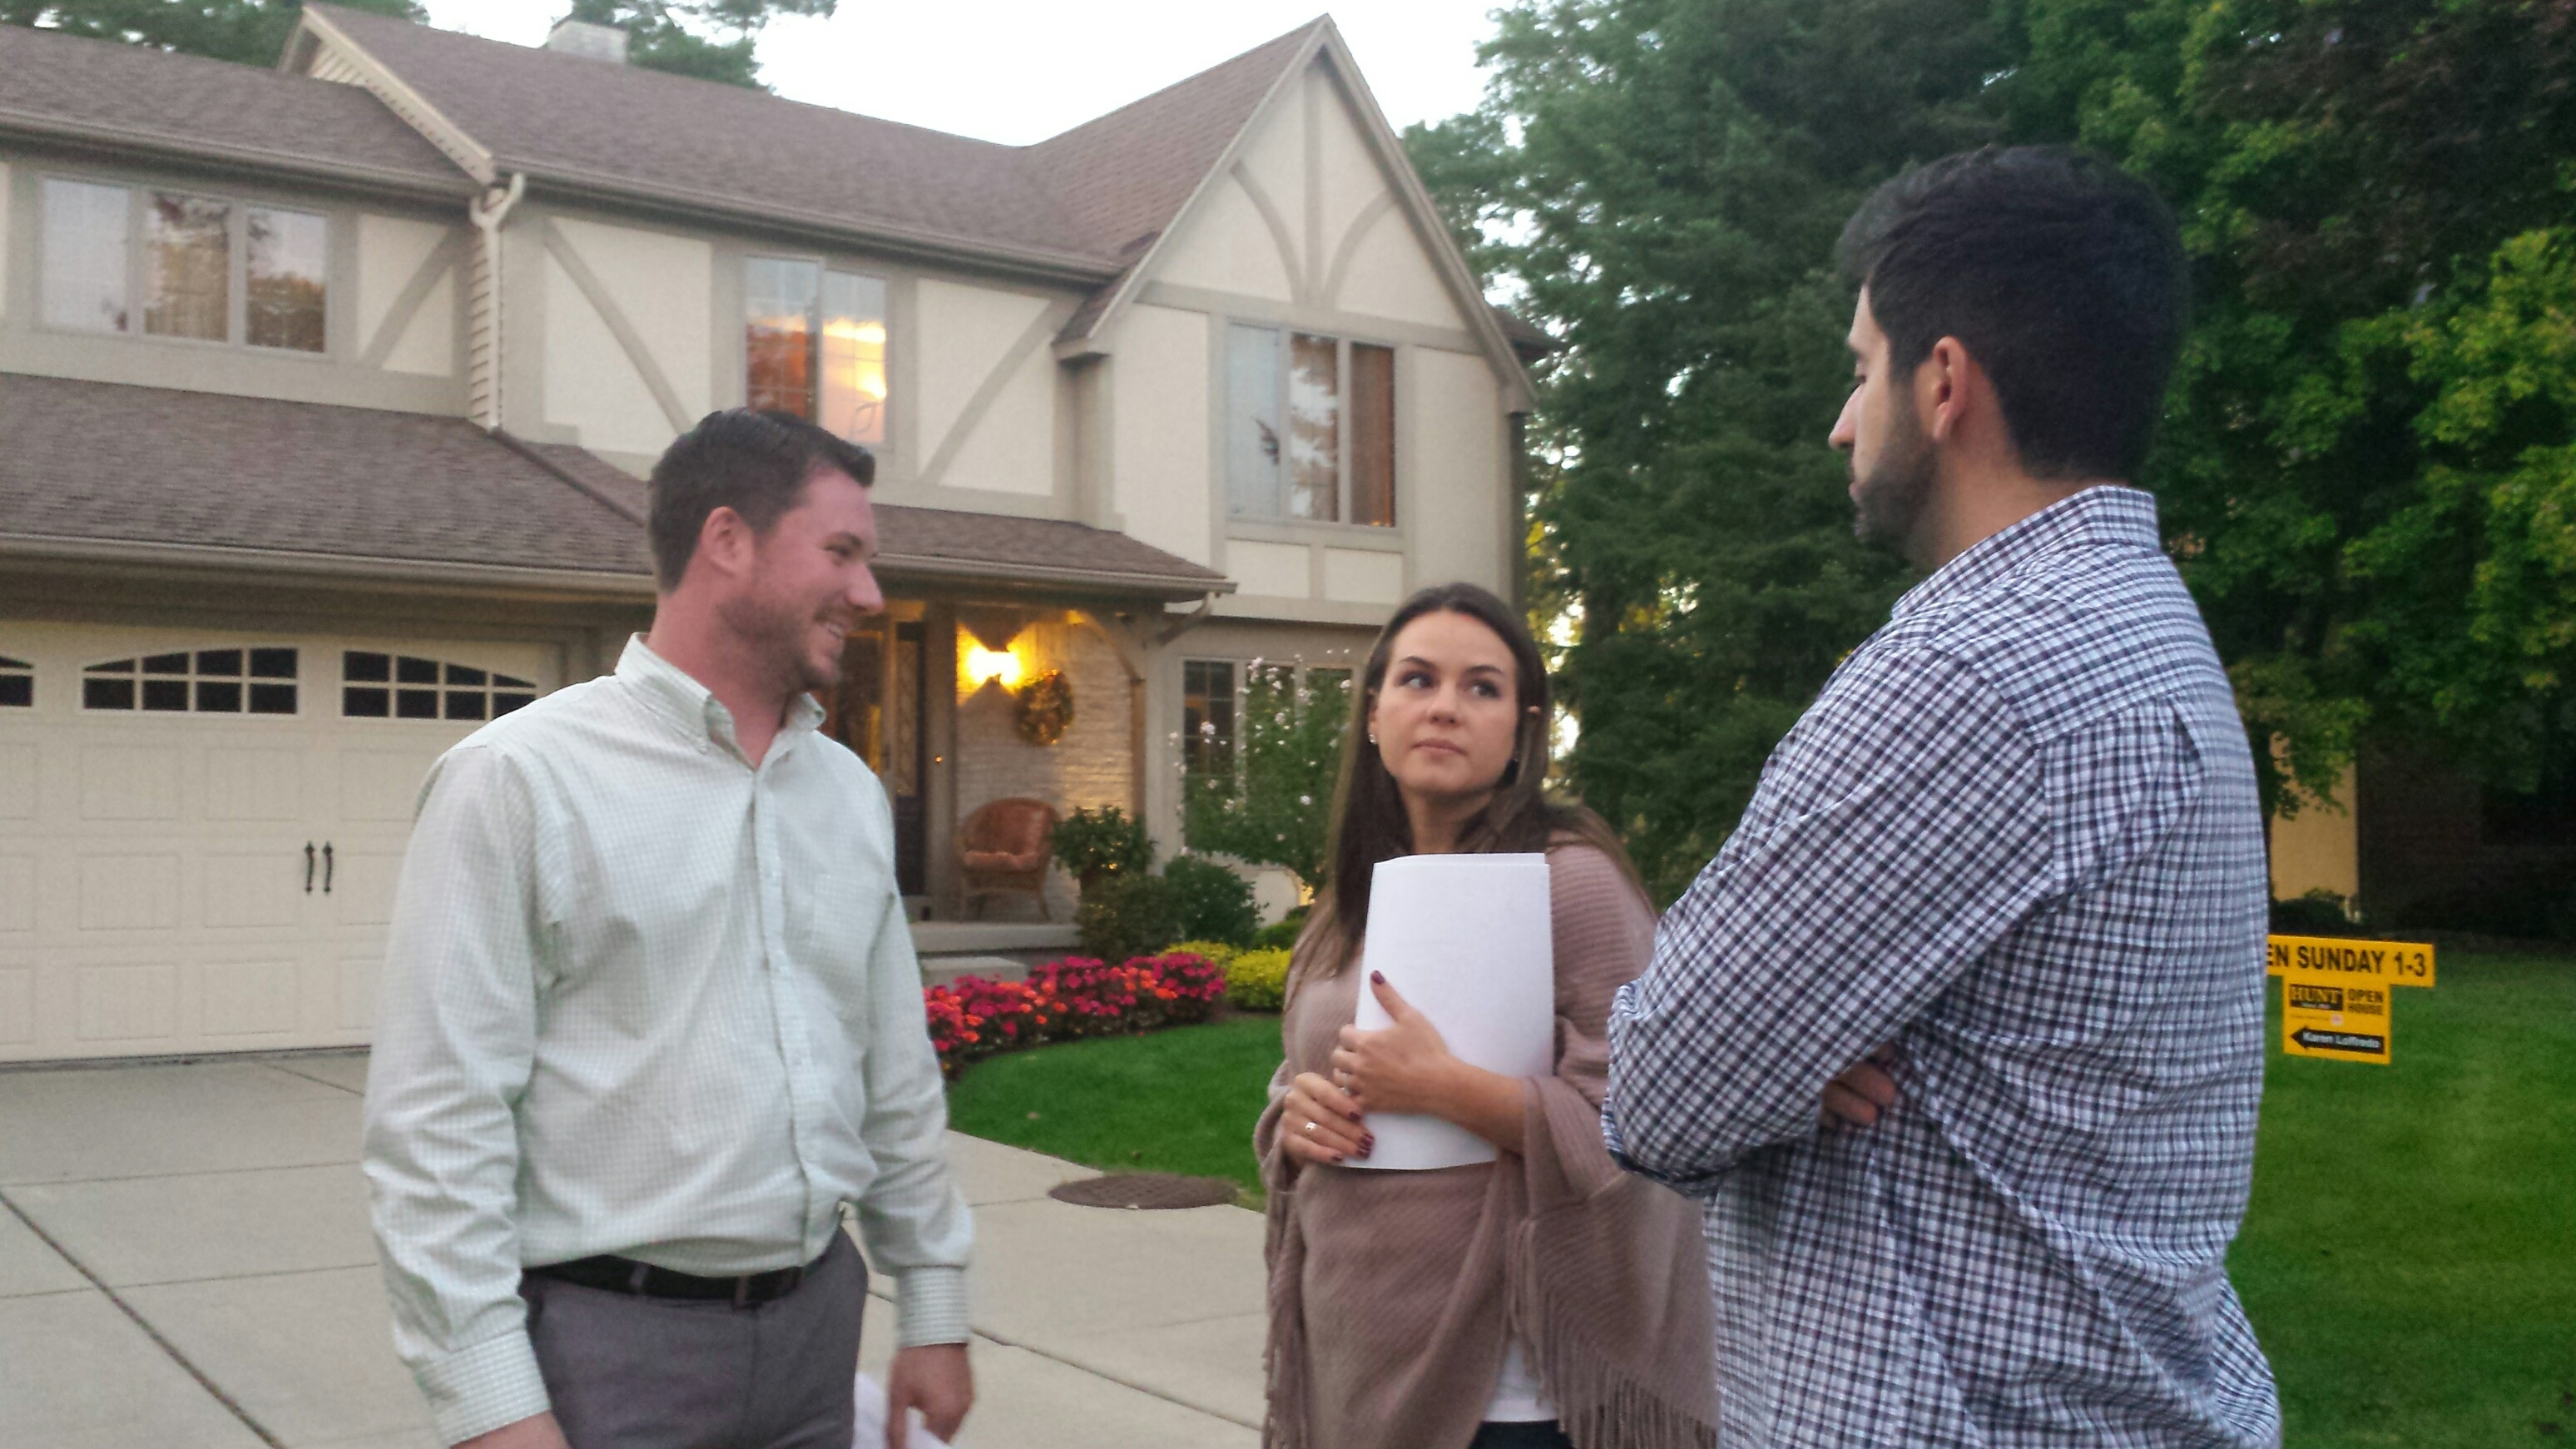 Realtor Greg Straus talks with Micaela and Aaron LaJoie after touring an Amherst home. The home is listed for $289,900, but already has offers over $300,000. (Jonathan D. Epstein/Buffalo News)